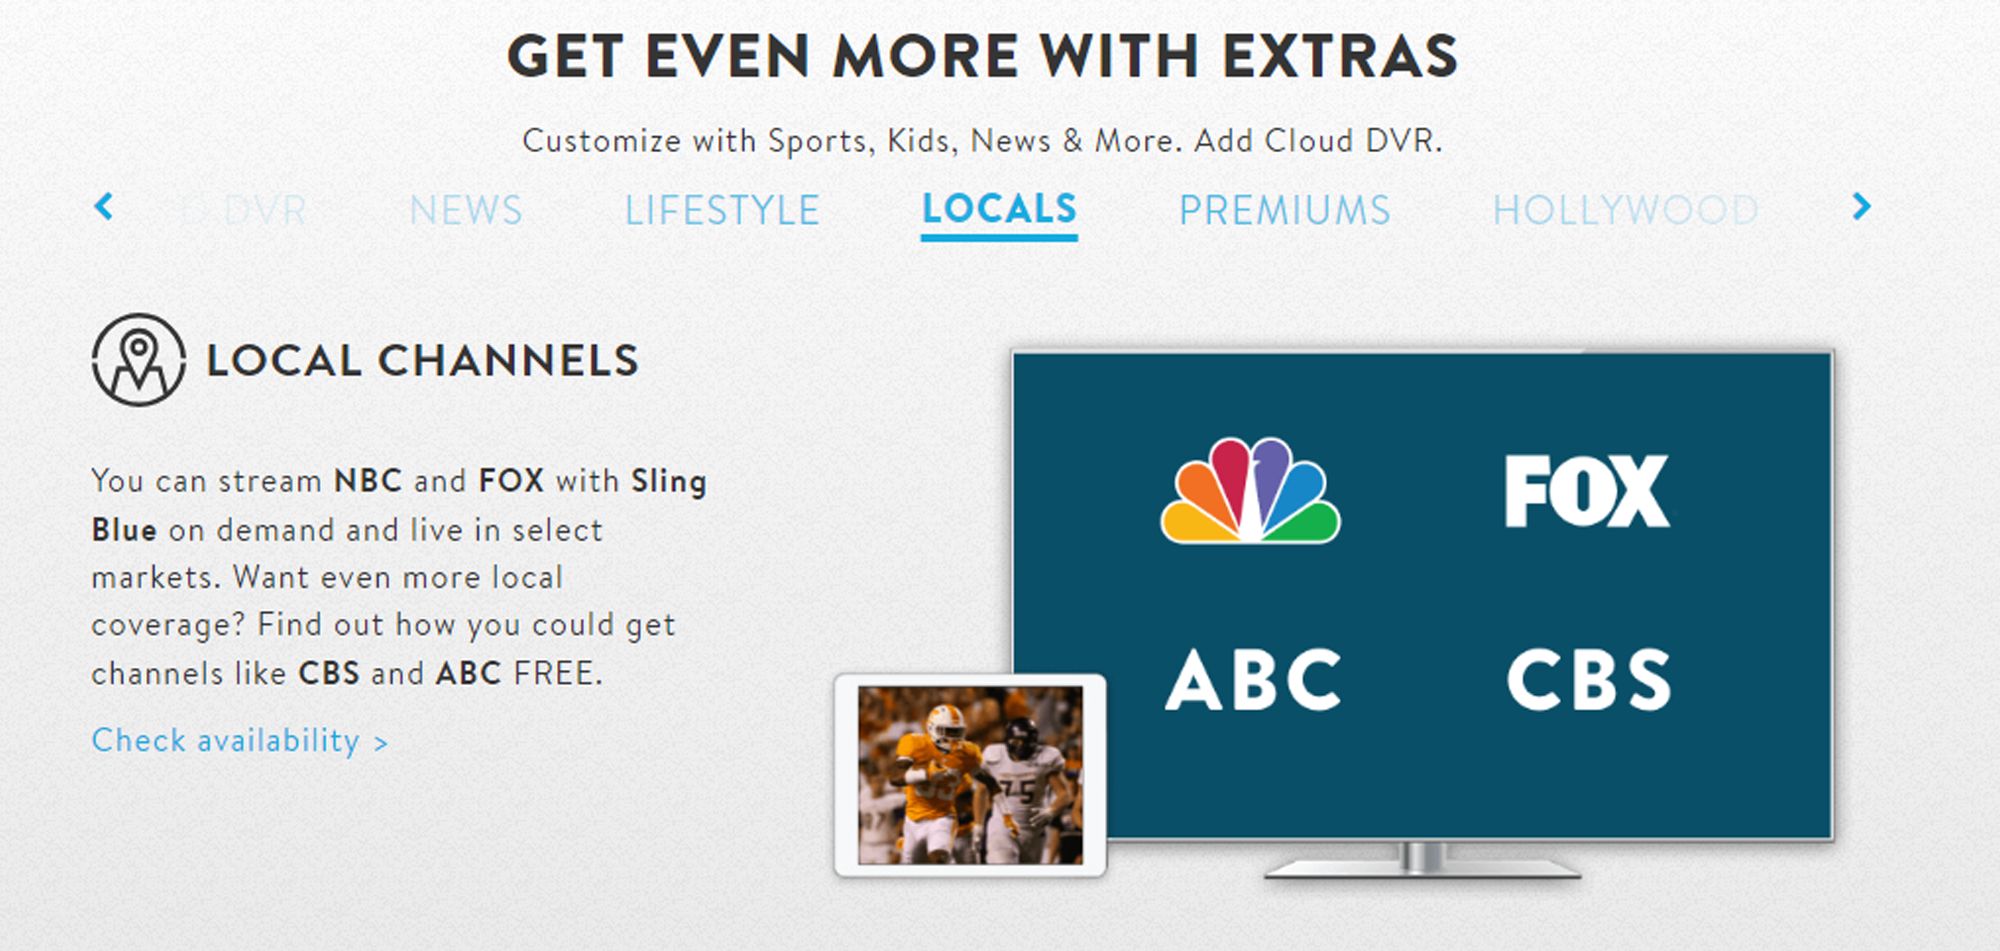 Sling offers the cheapest plans among all of its competitors.